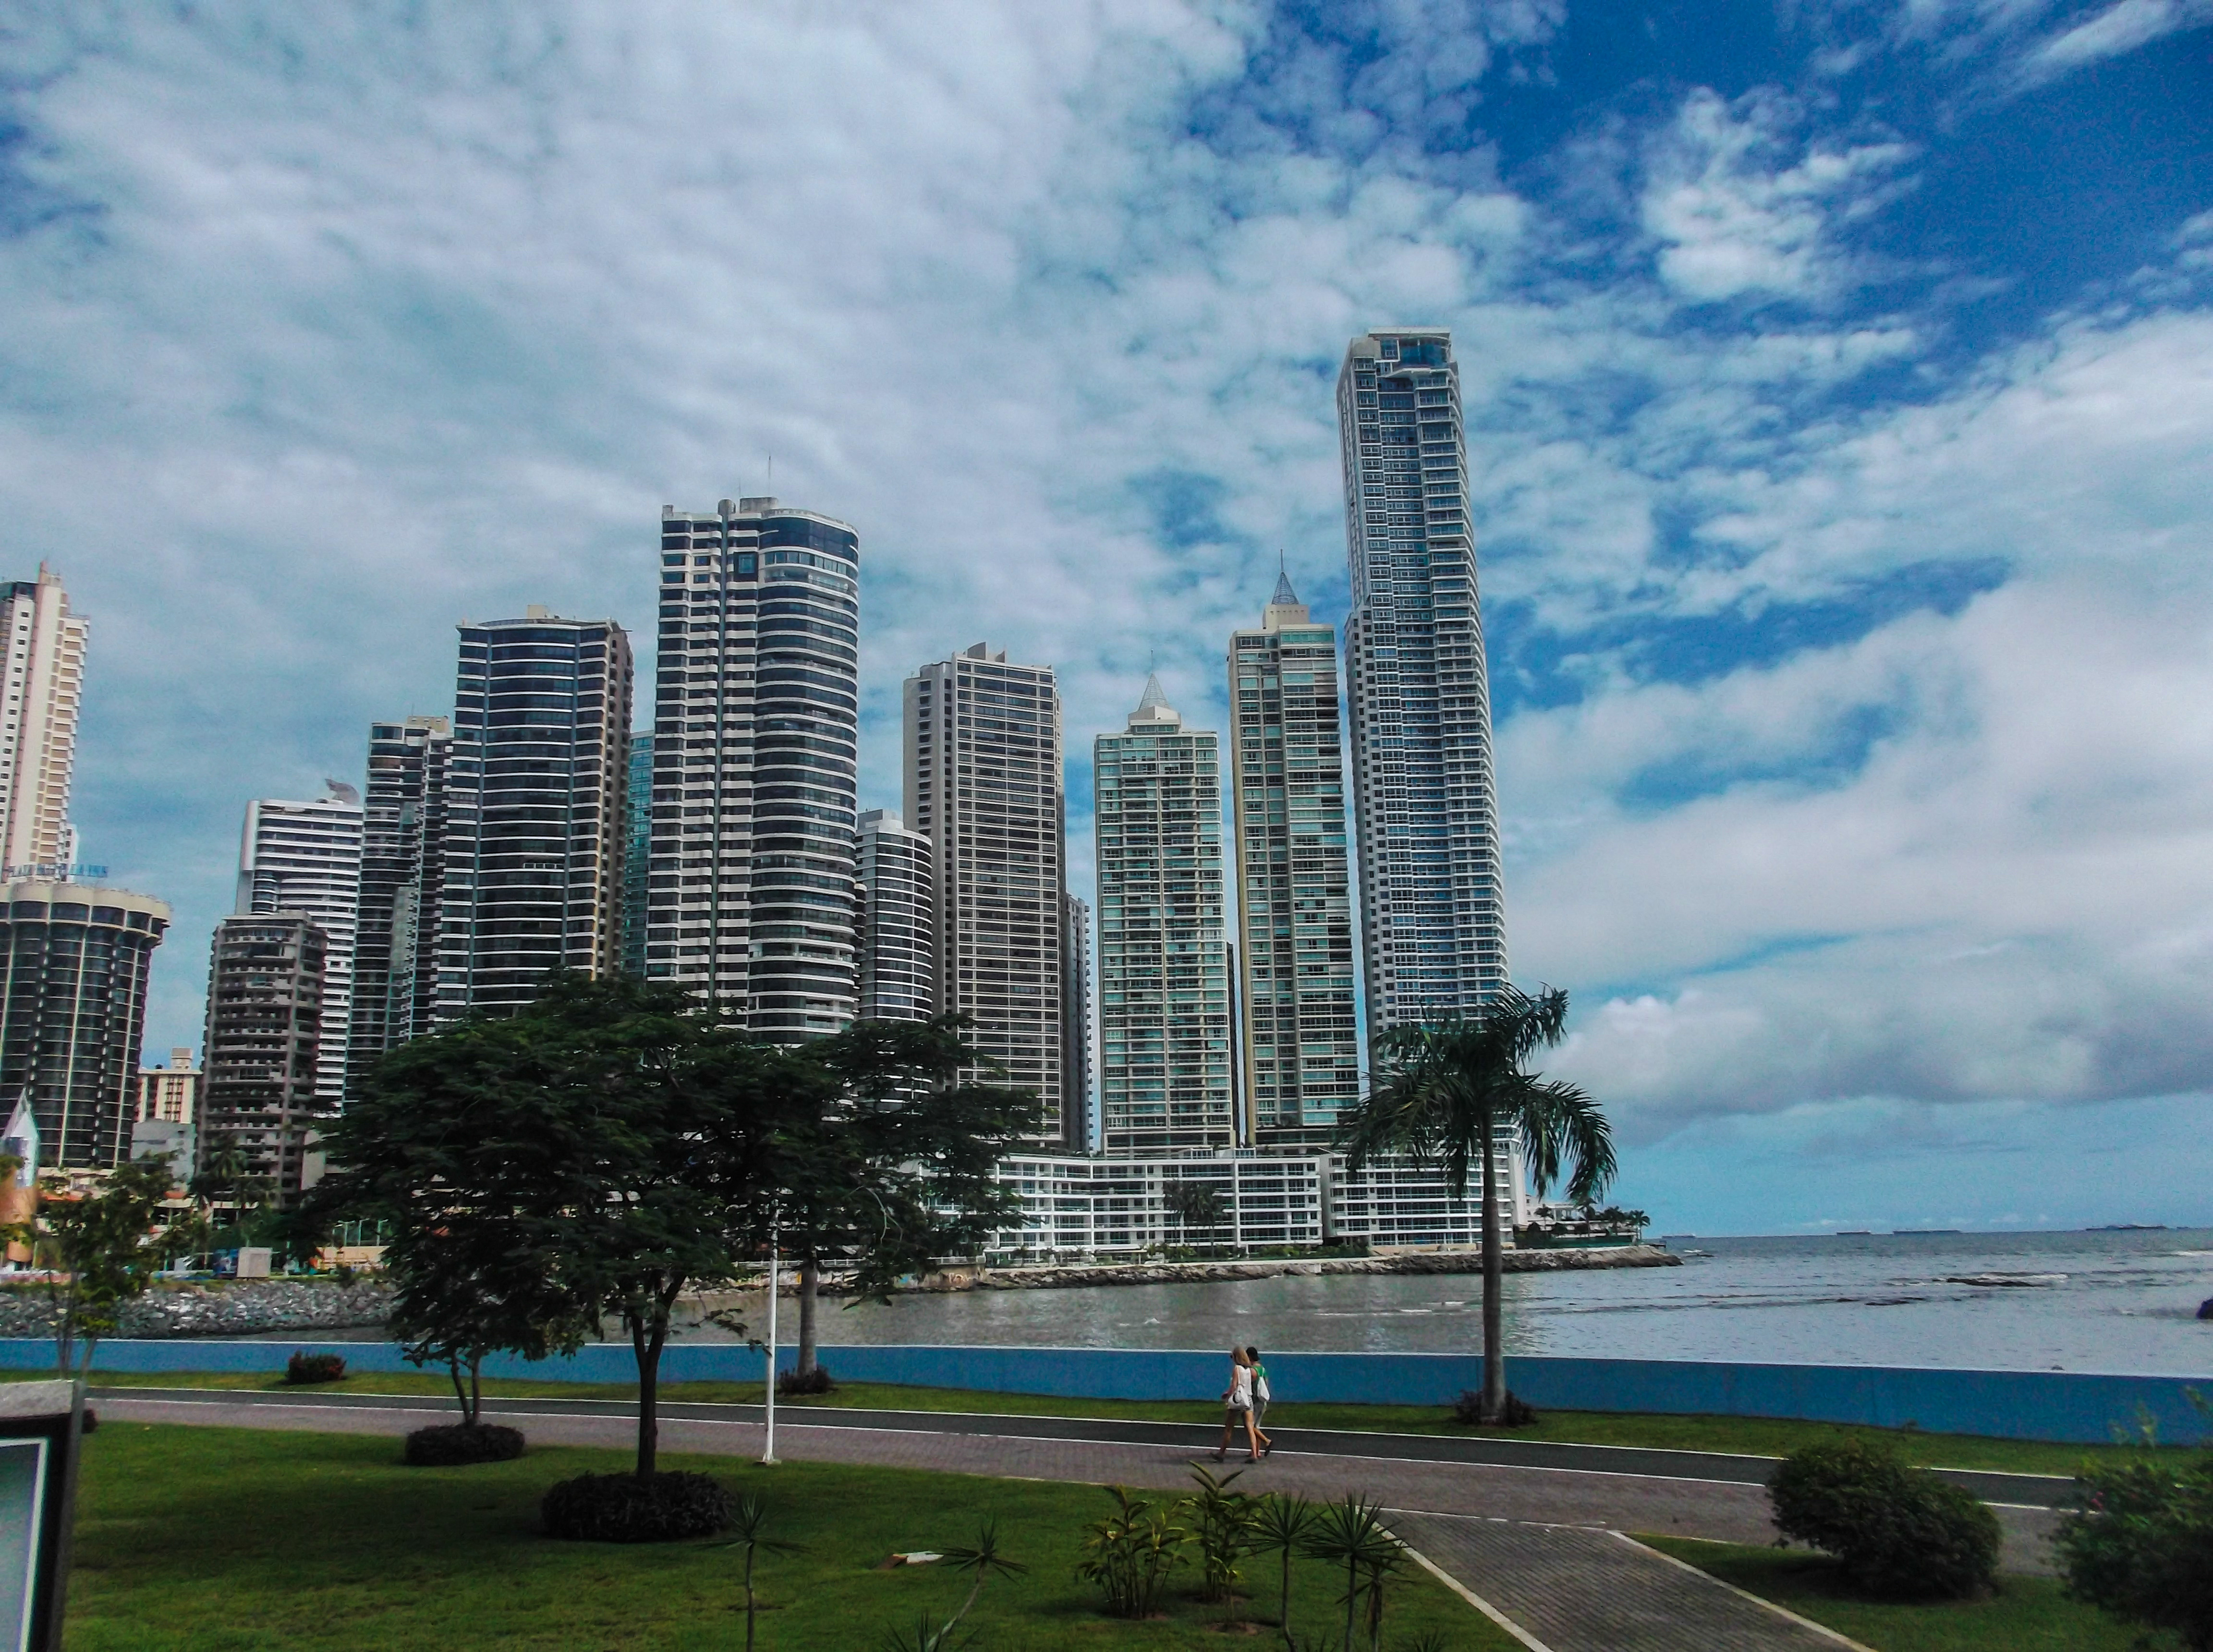 View of the modern side of Panama City